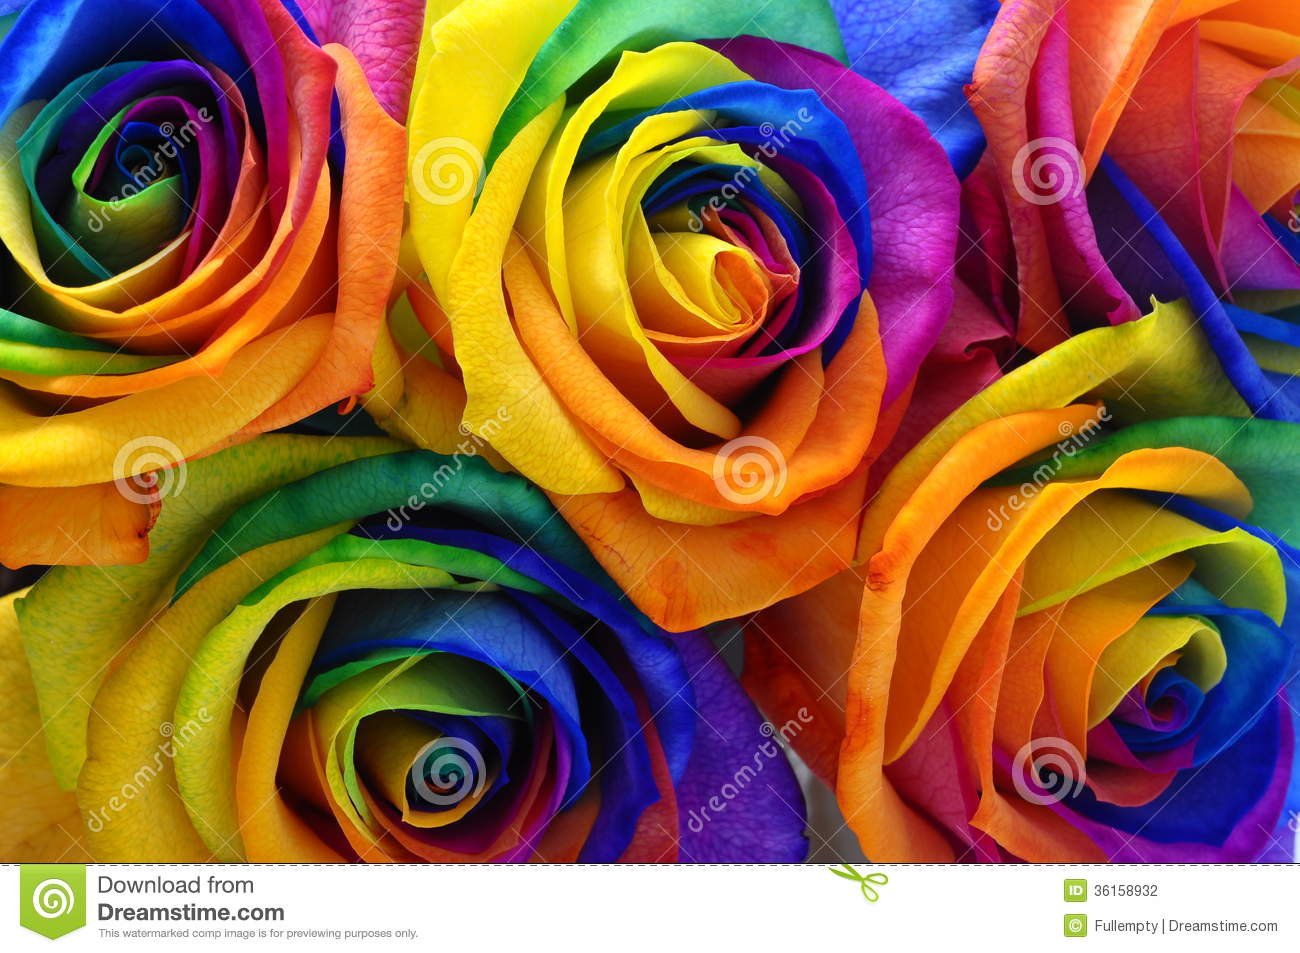 Gousicteco neon rainbow roses wallpaper images for Multi colored rose petals